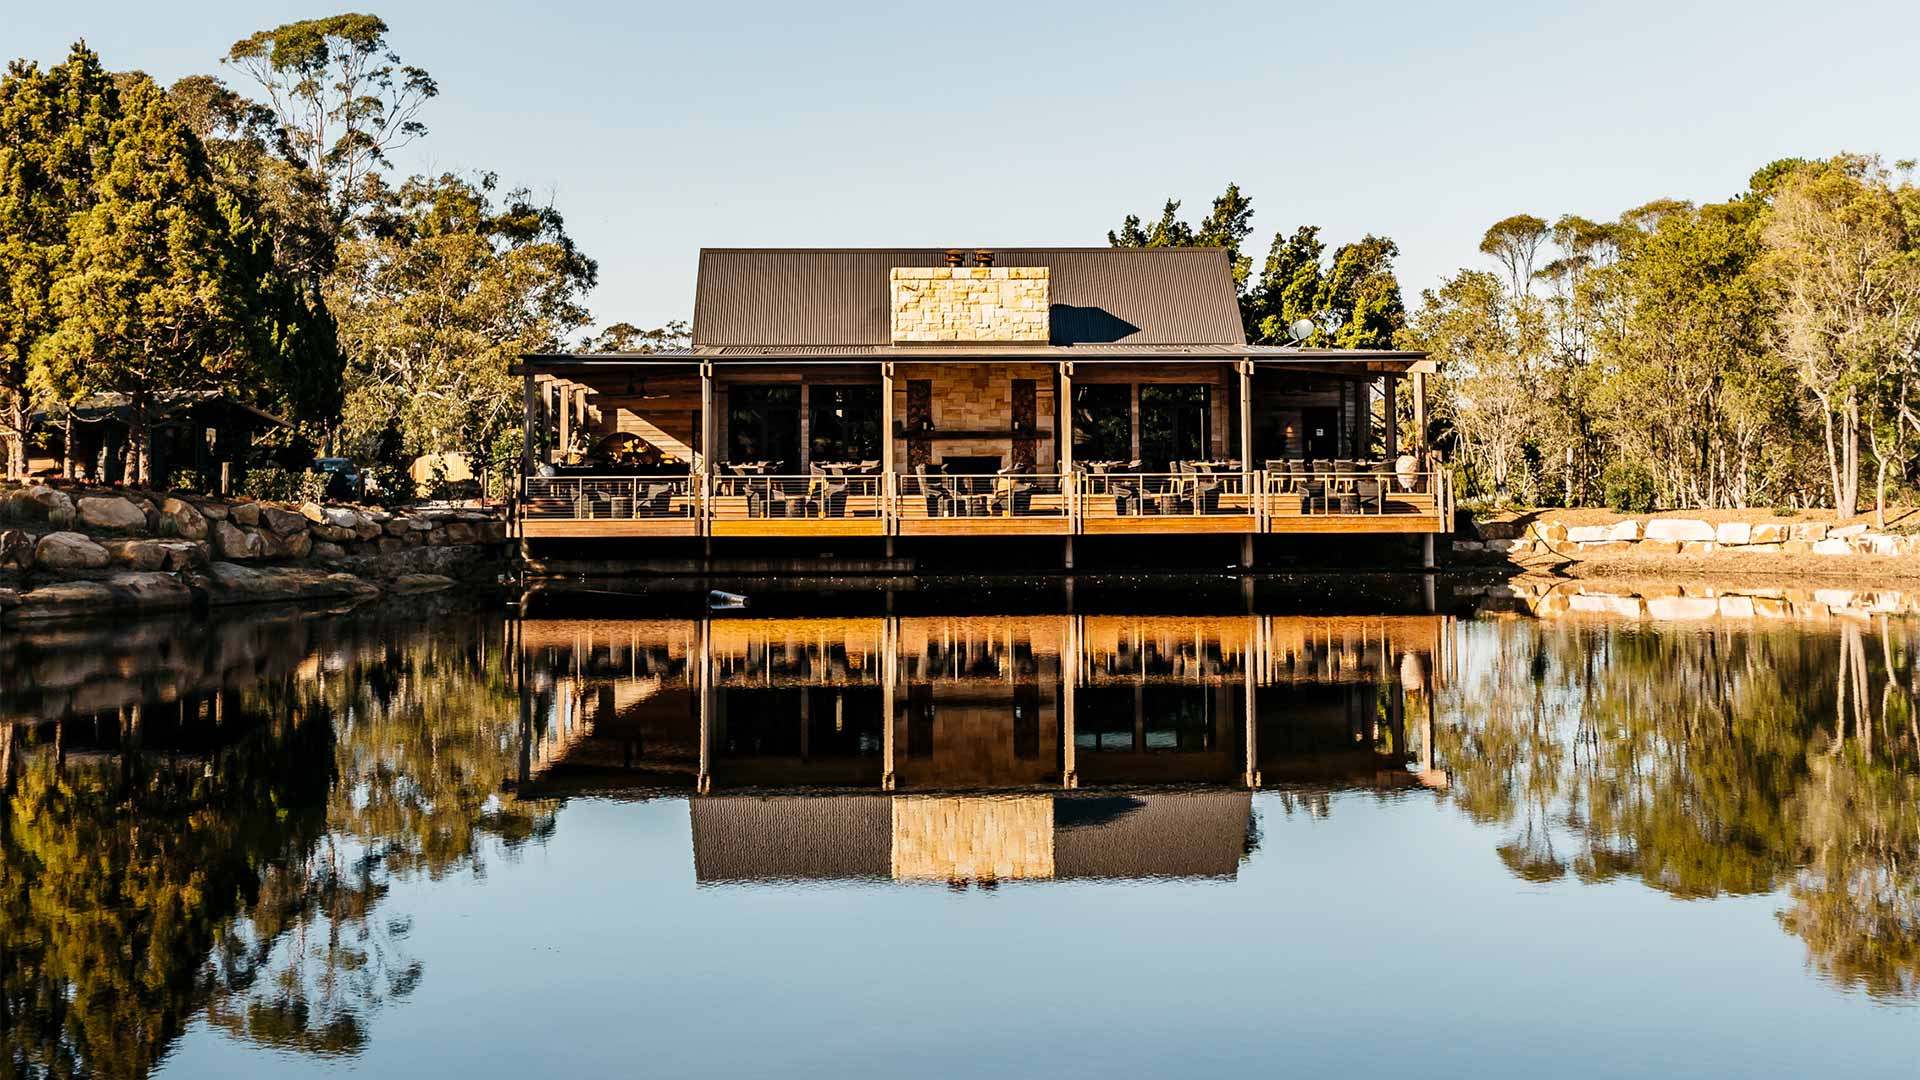 Saddles Is The Central Coasts Stunning New Bush Restaurant And